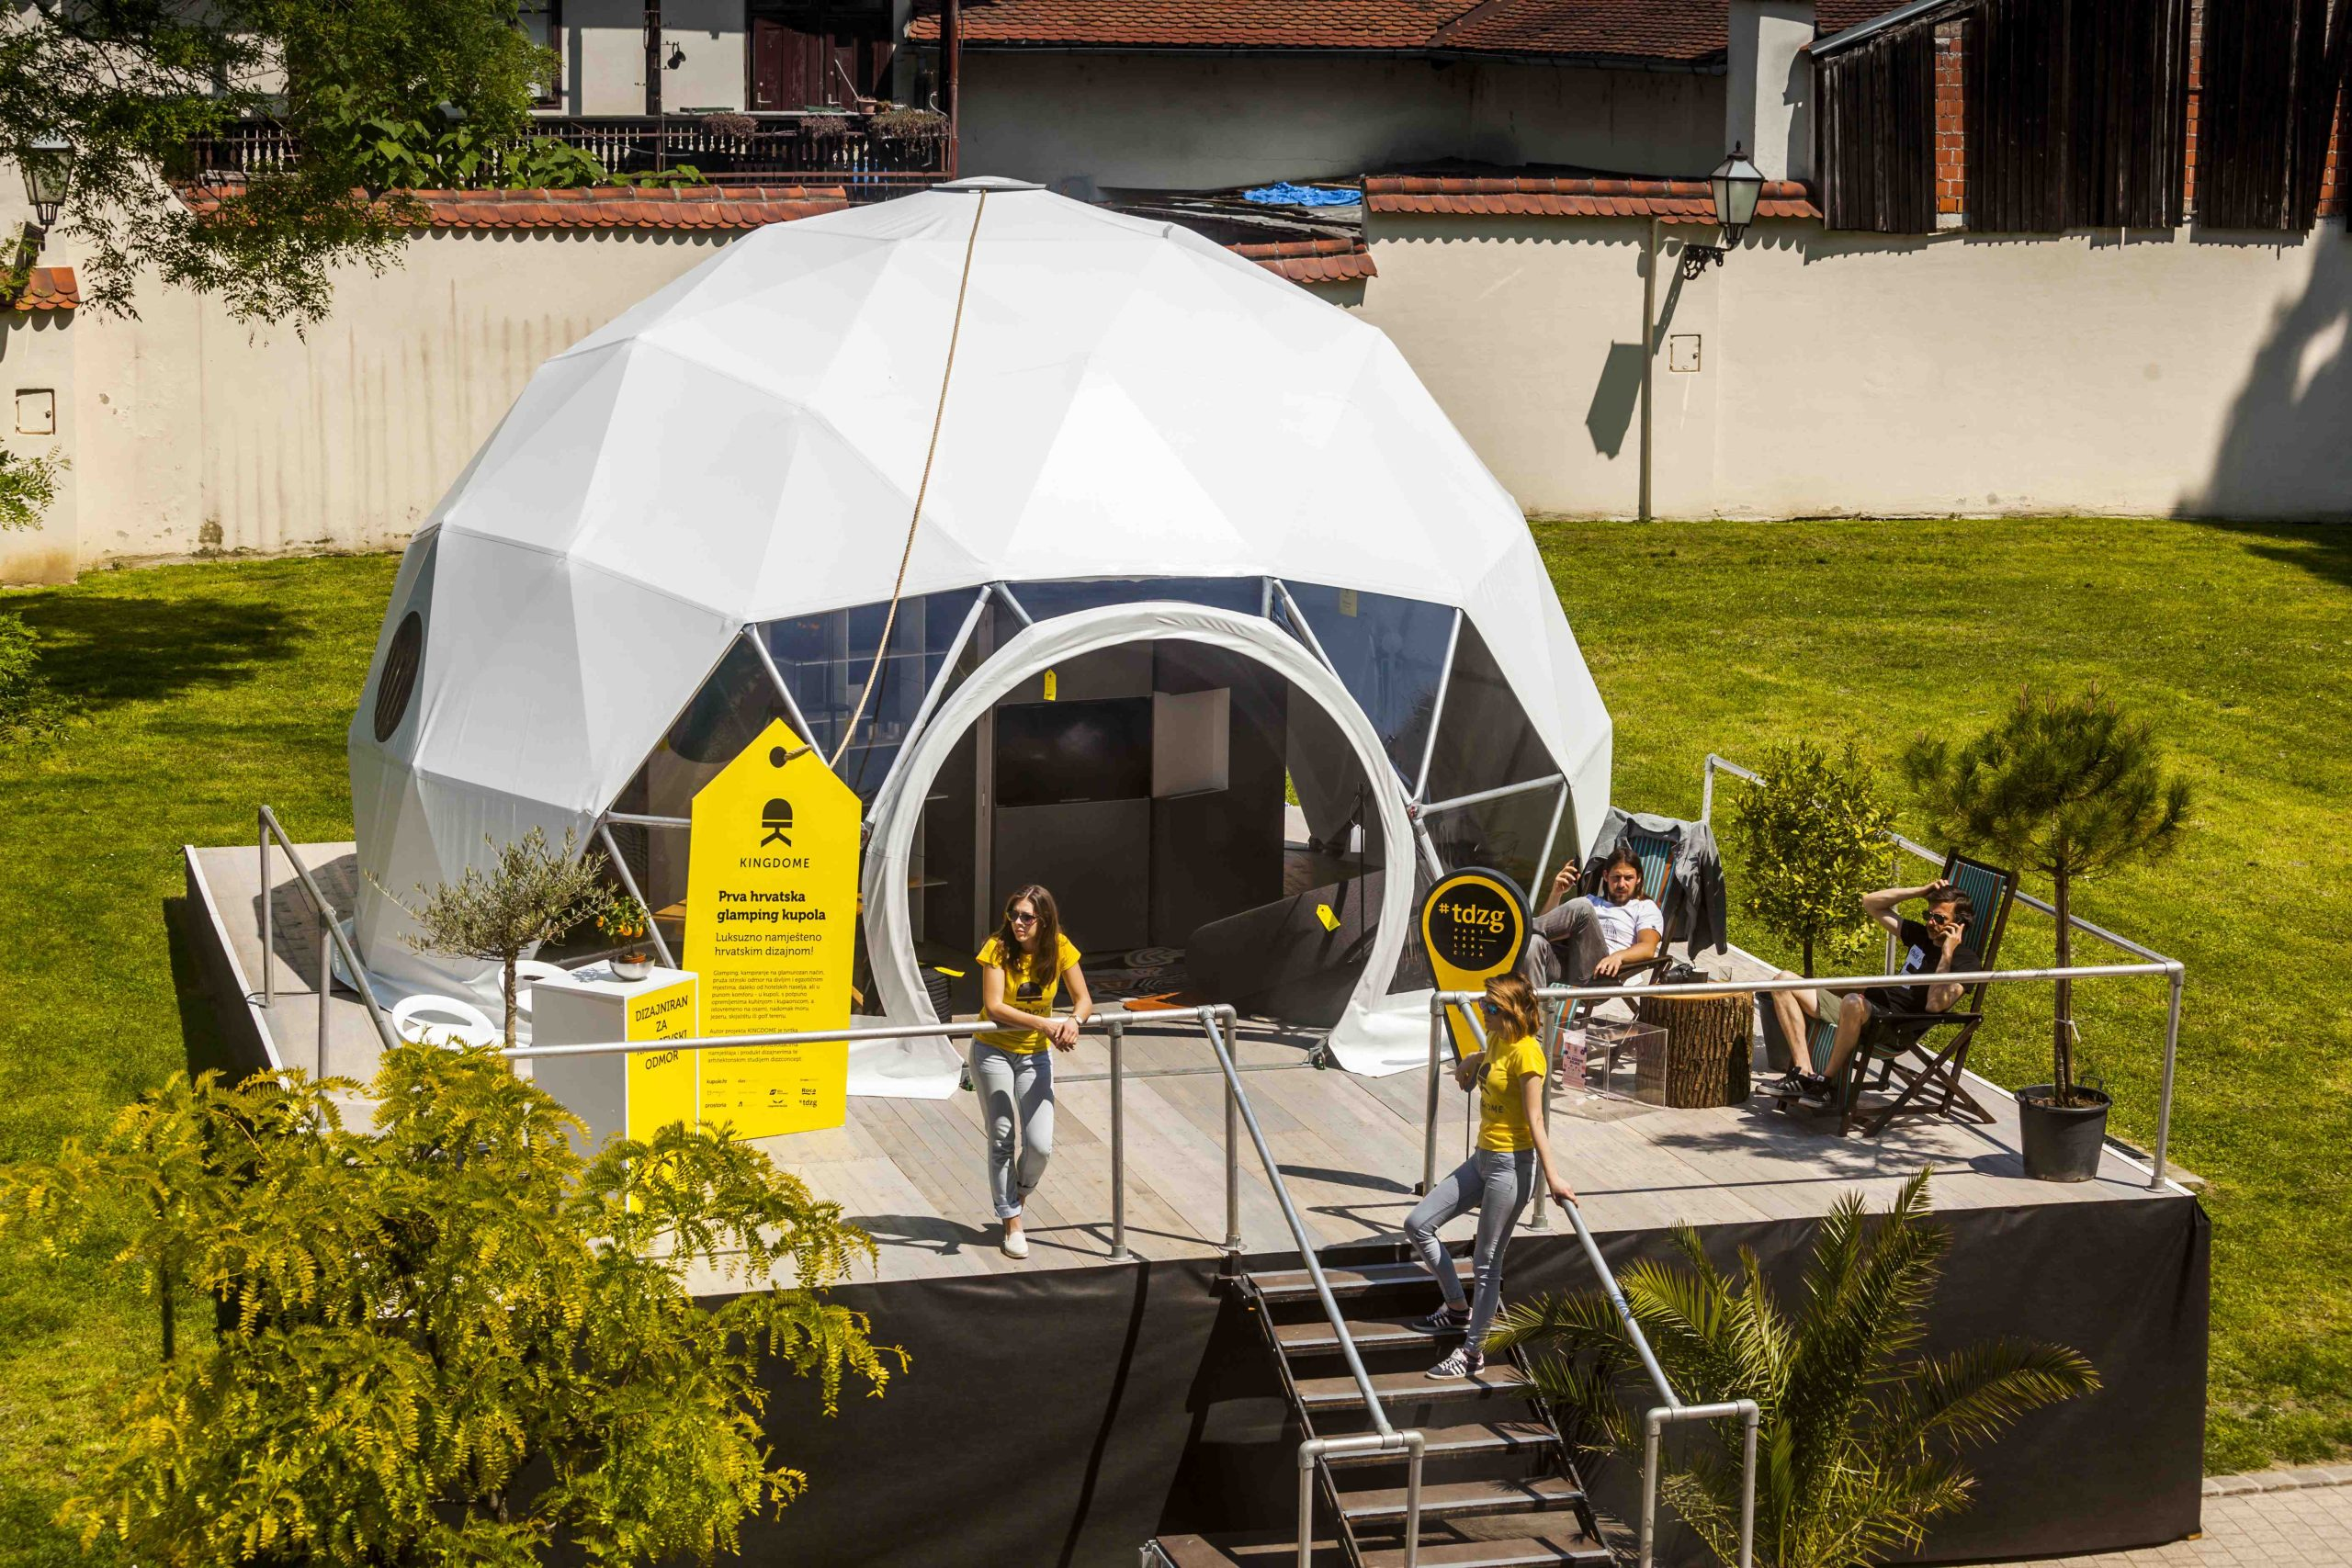 [PHOTOS] A Look Inside the First Croatian Glamping Dome